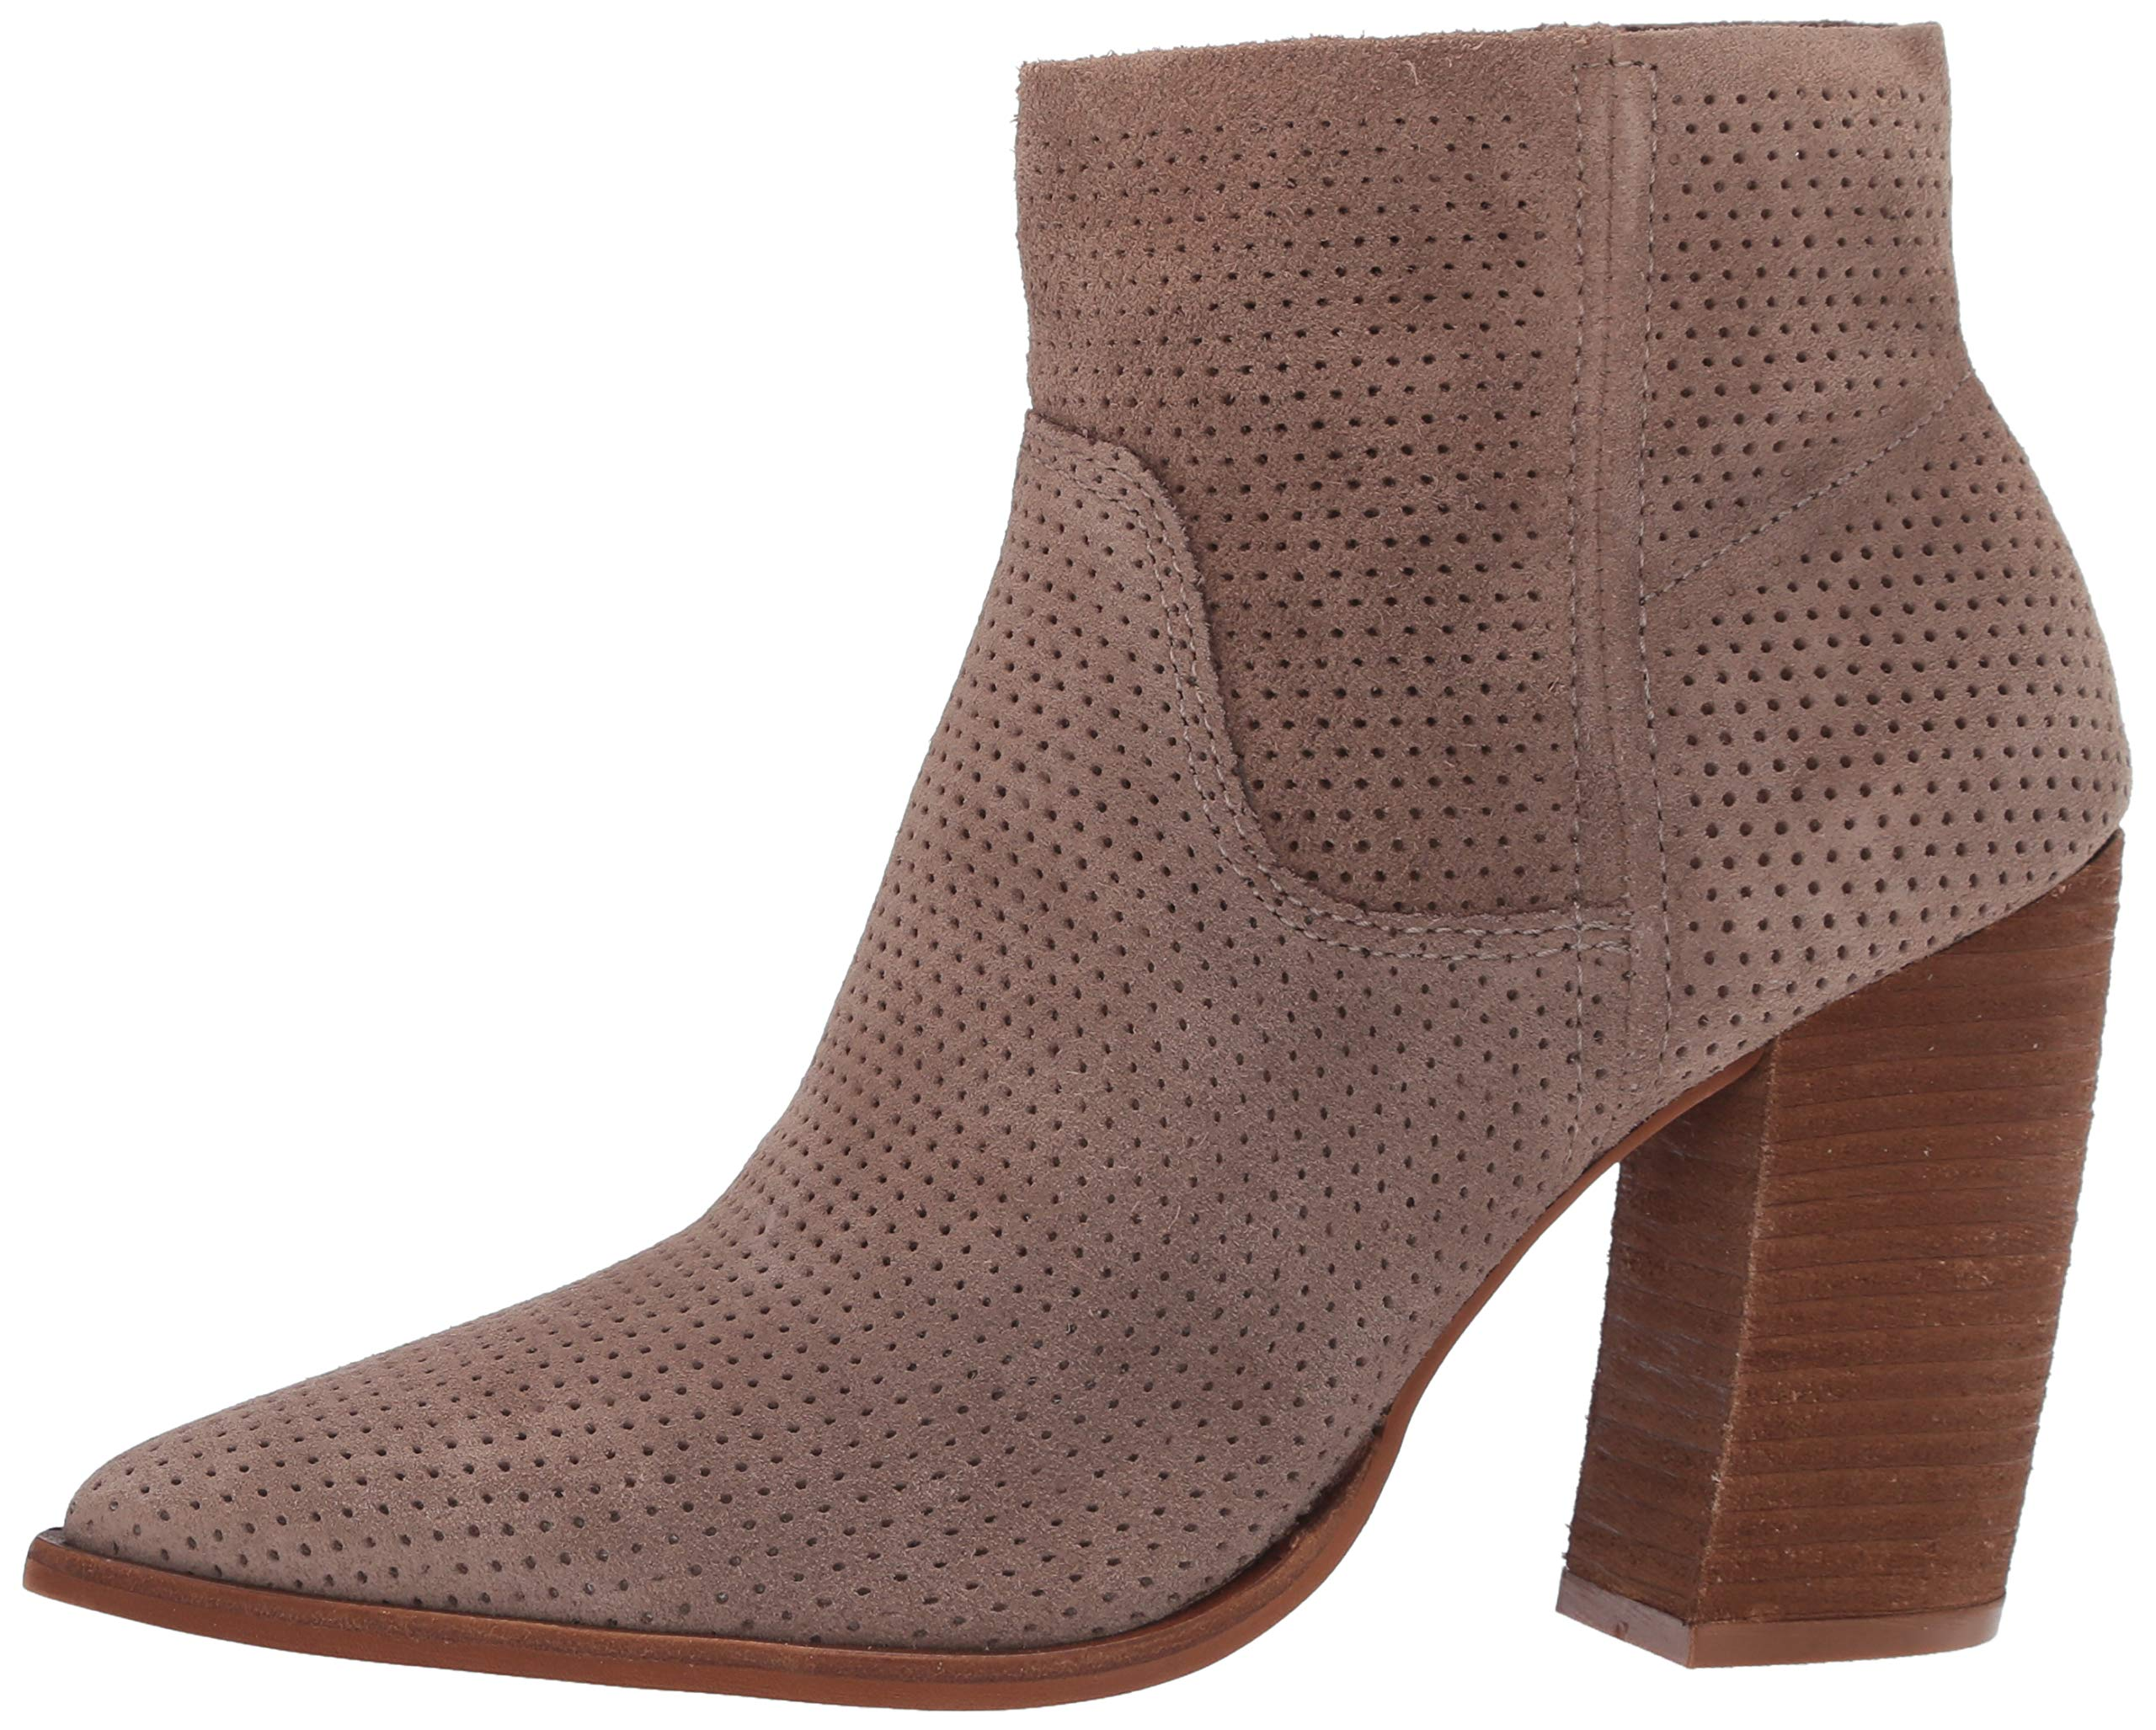 Vince Camuto Womens Cava Ankle Boot